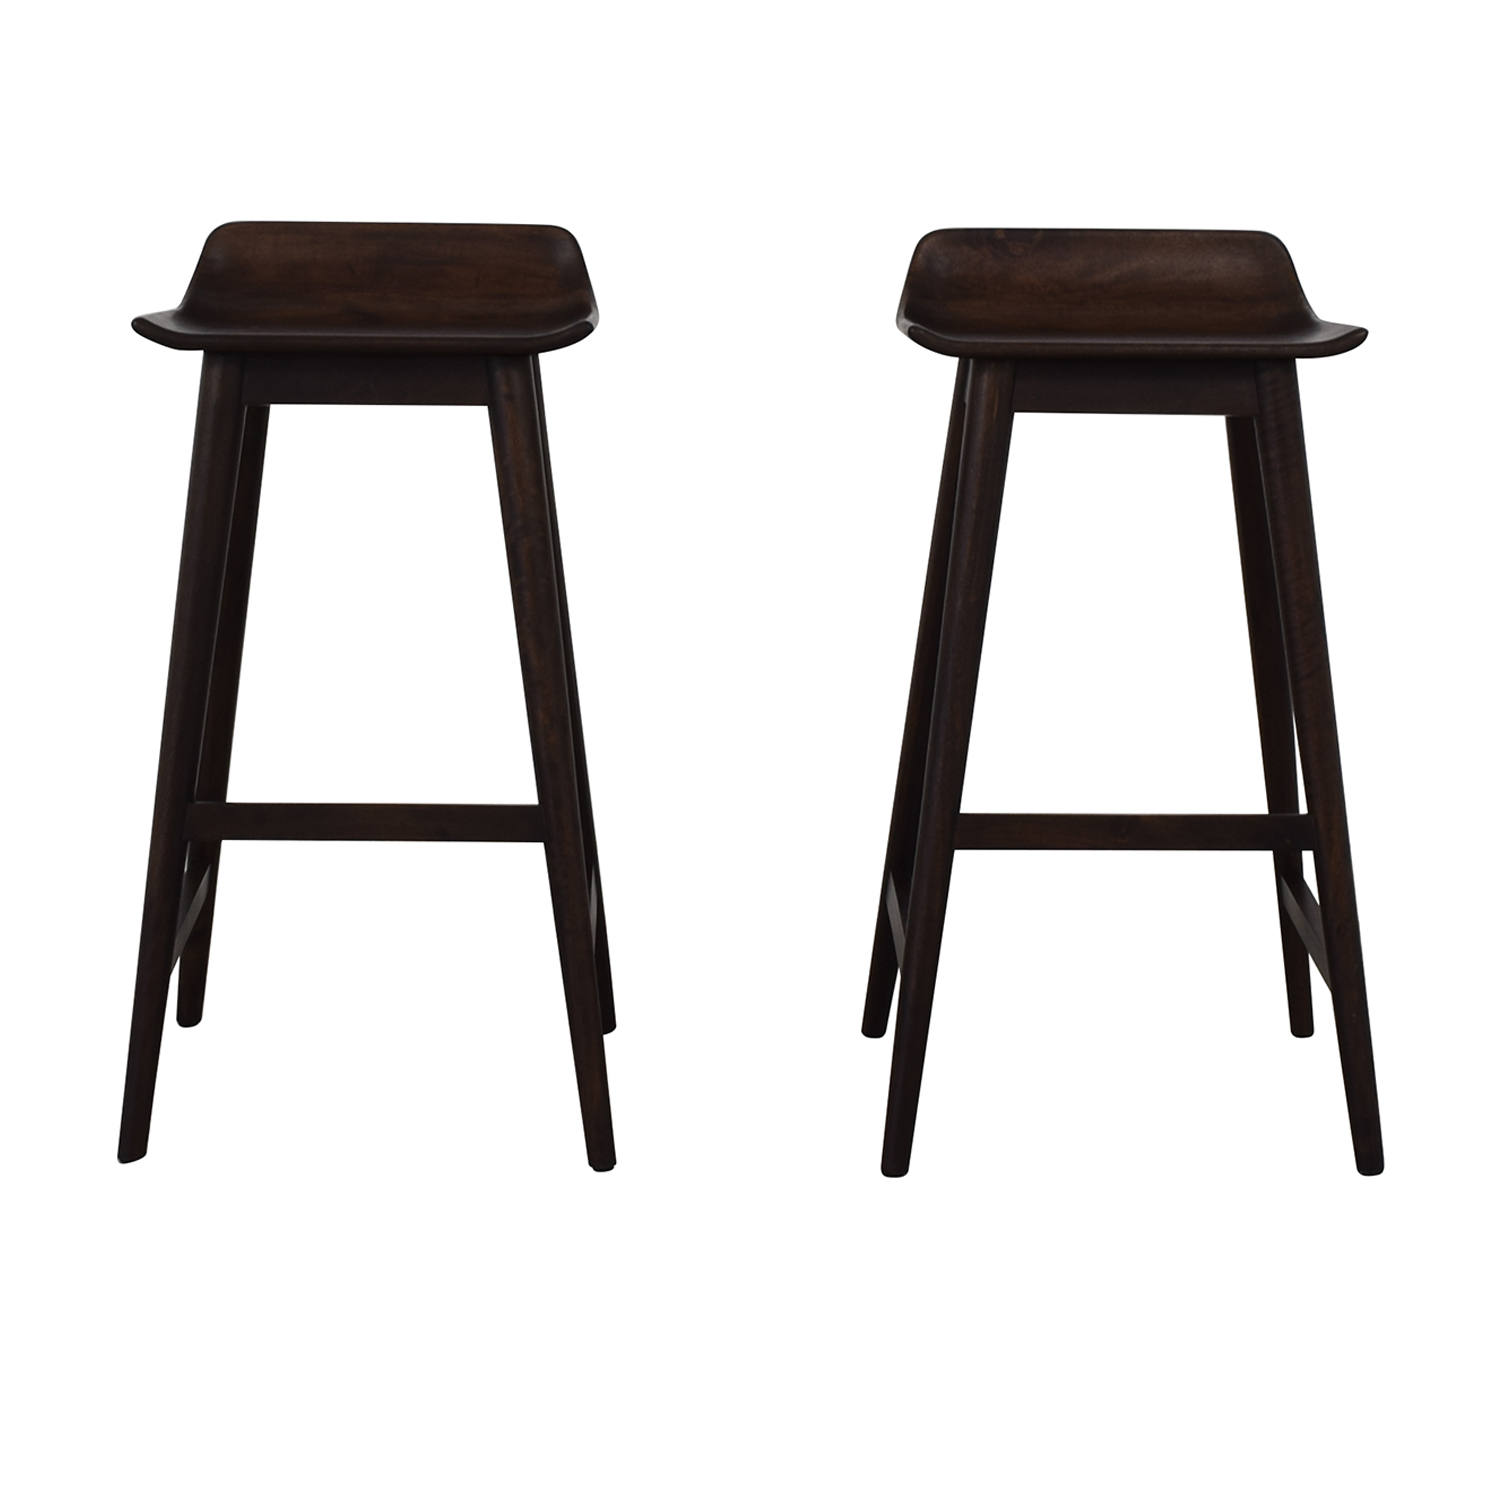 CB2 CB2 Wainscot Bar Stools for sale